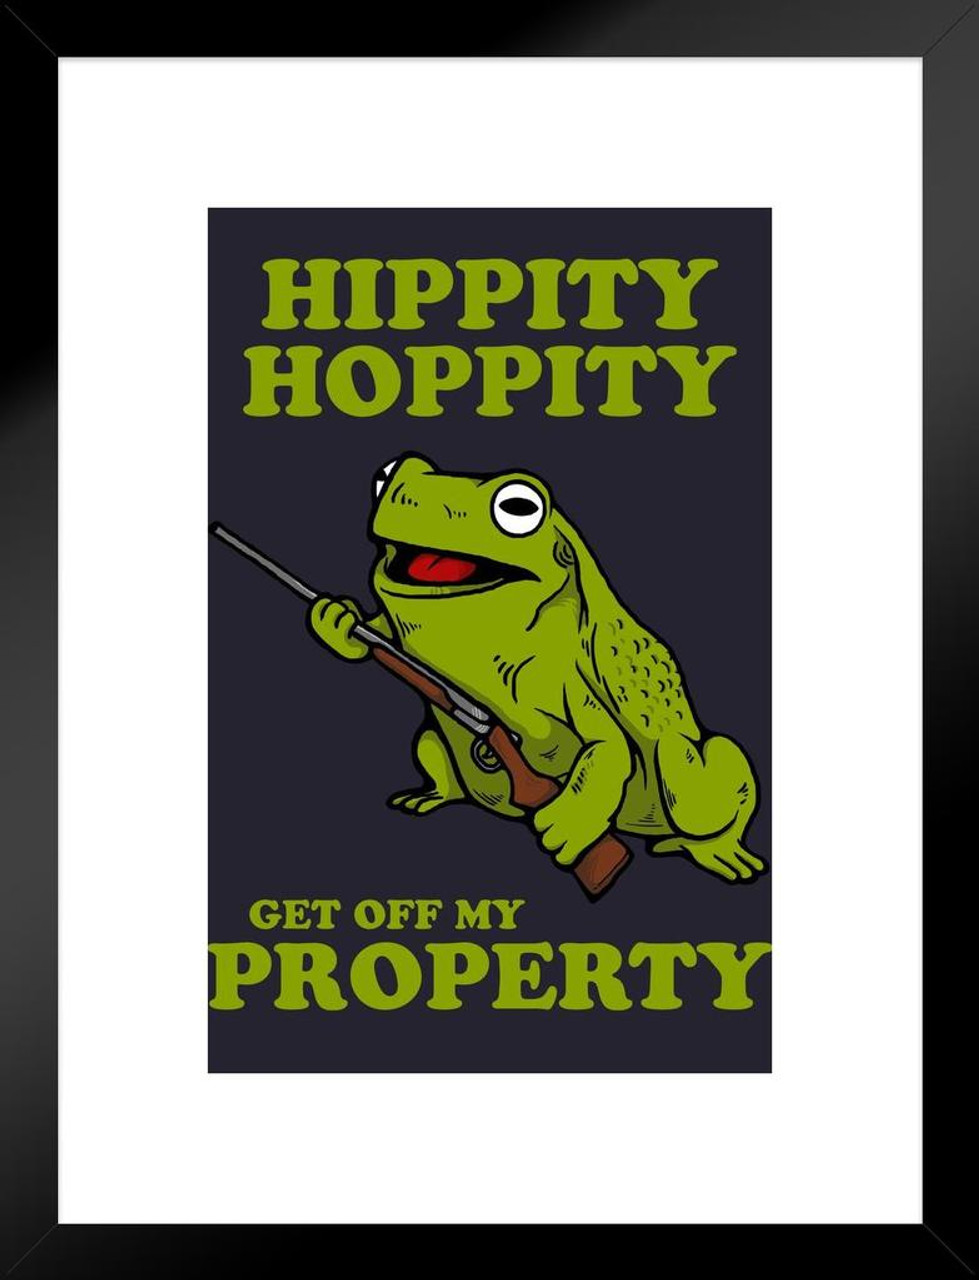 Hippity Hoppity Get Off My Property Funny Matted Framed Wall Art Print 20x26 Inch Poster Foundry Original hippity hoppity get off my property design. hippity hoppity get off my property funny matted framed wall art print 20x26 inch